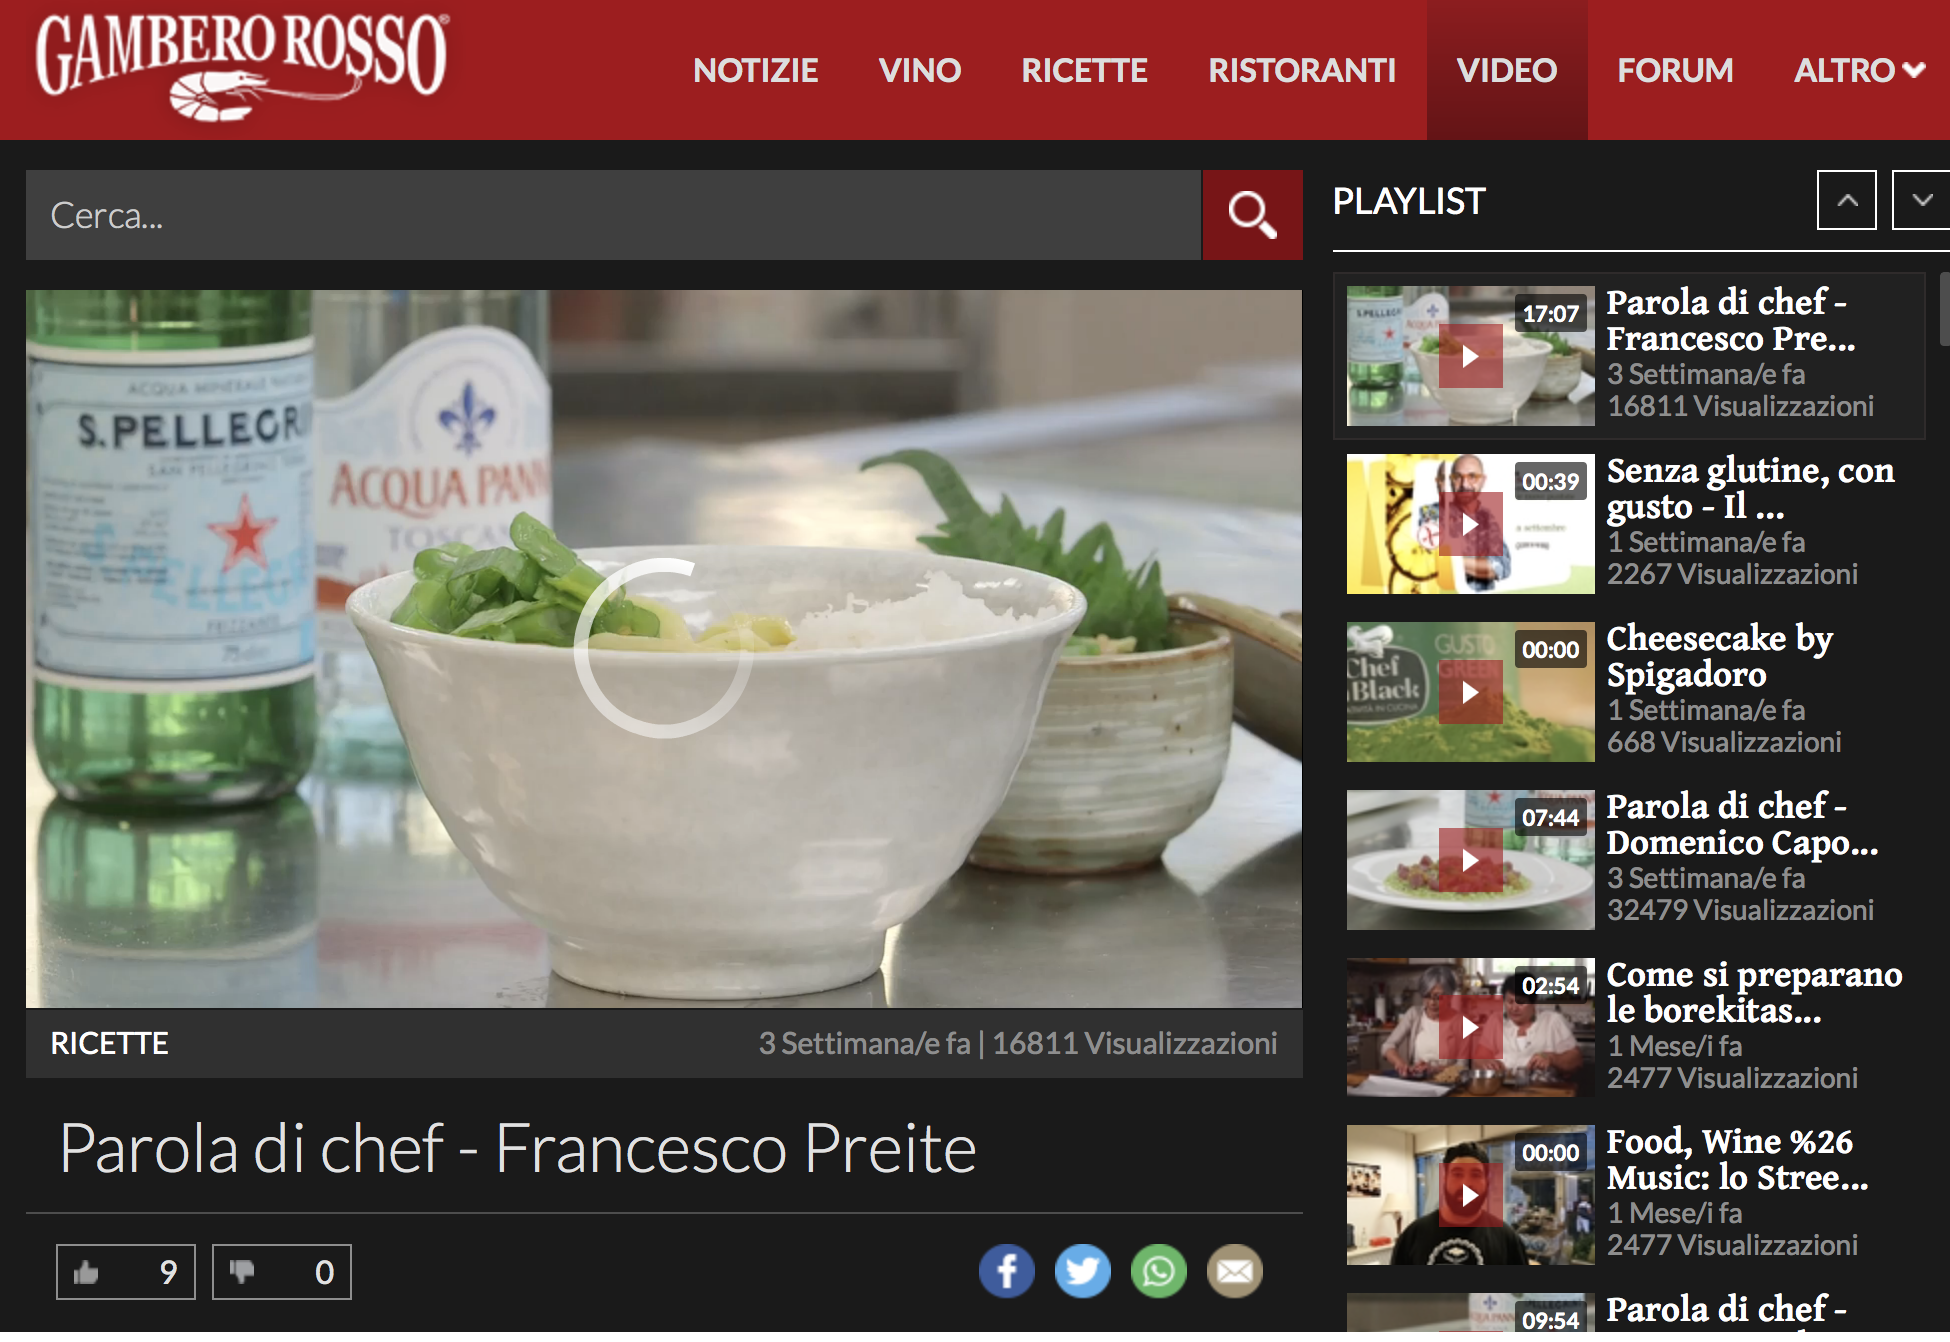 Gambero Rosso Web tv project